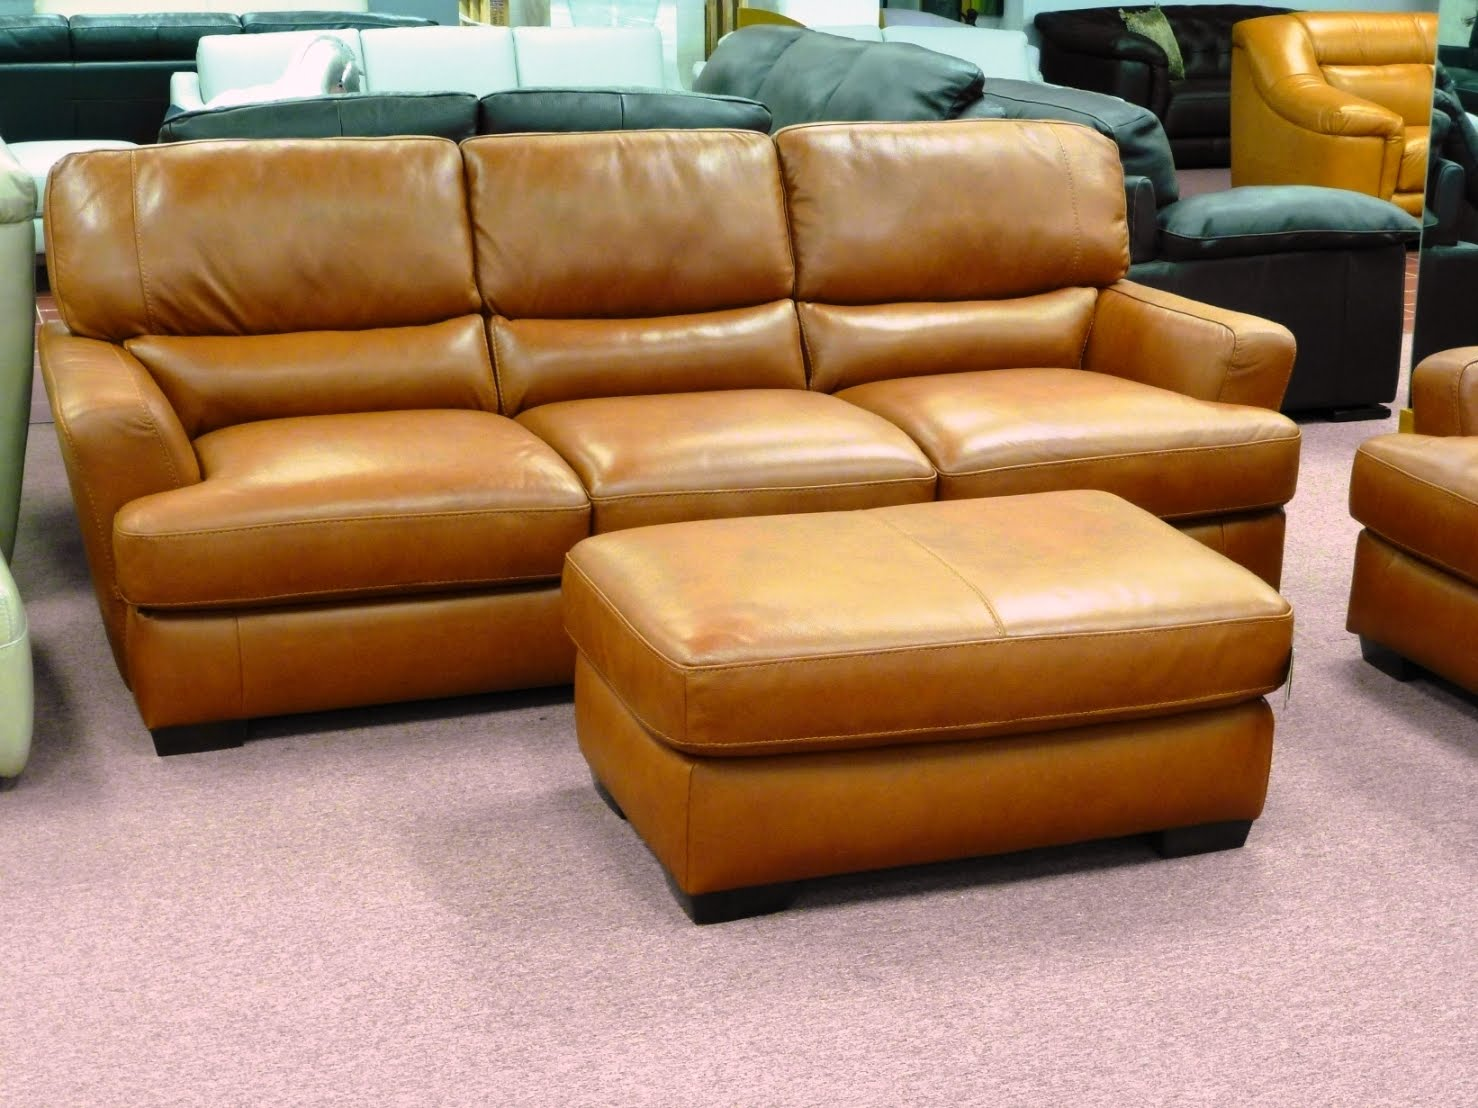 Natuzzi Leather Sofas Sectionals By Interior Concepts Furniture Orange Leather Sofa By